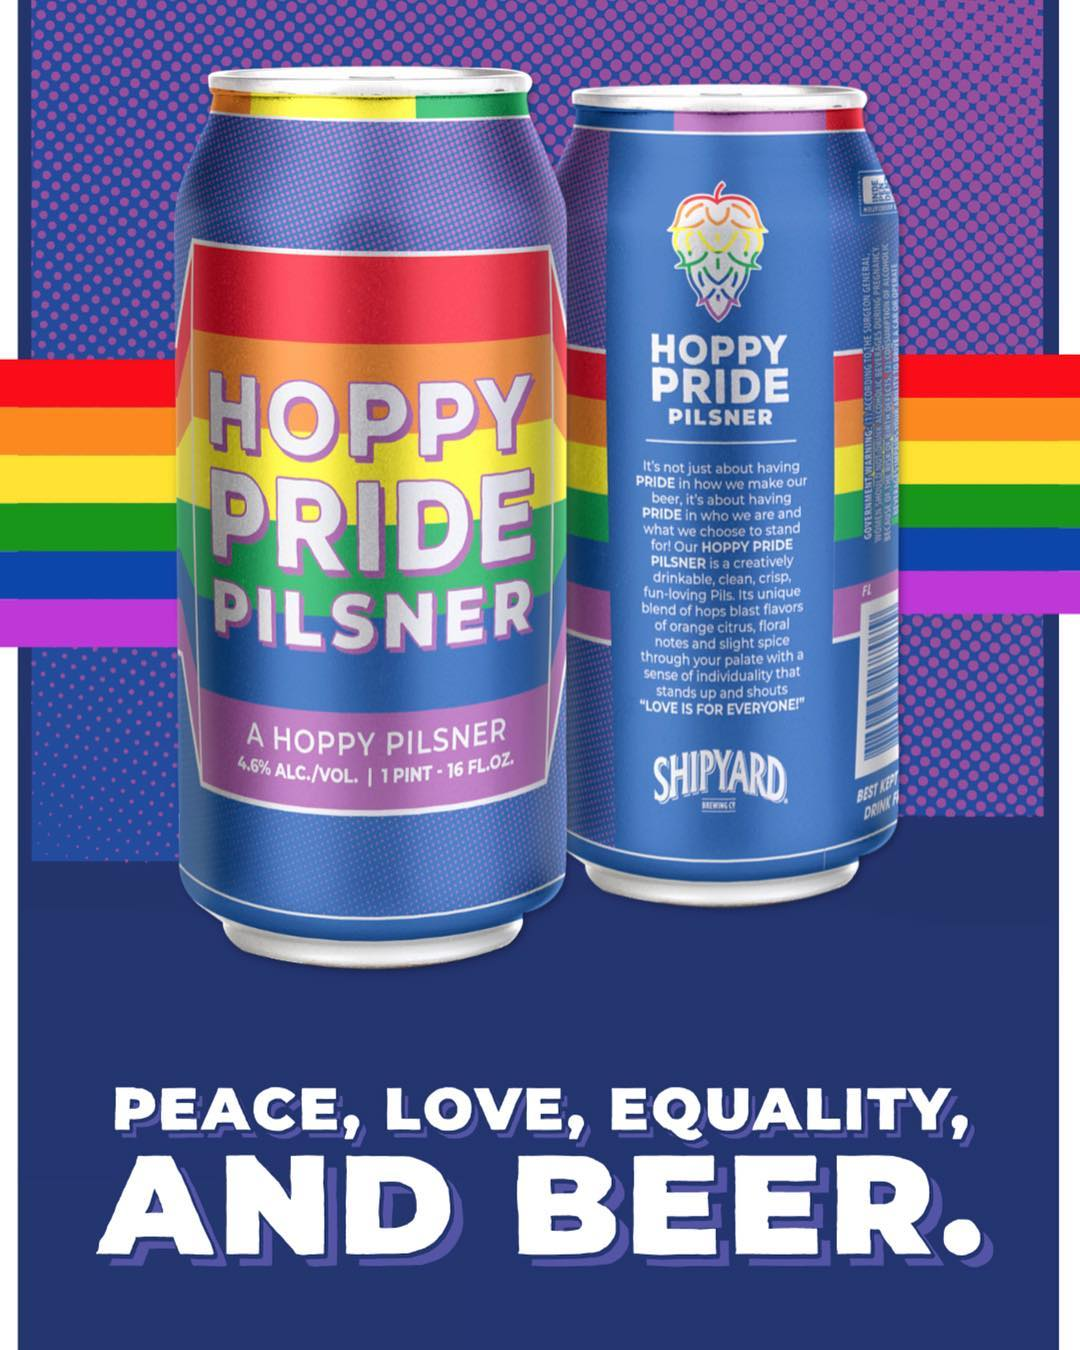 """HOPPY PRIDE PILSNER - """"Shipyard Brewing is celebrating having PRIDE in who we are & what we choose to stand for."""" LOVE IS FOR EVERYONE."""" READ MORE🌈 DRINK AT TROUPE429 ✅"""